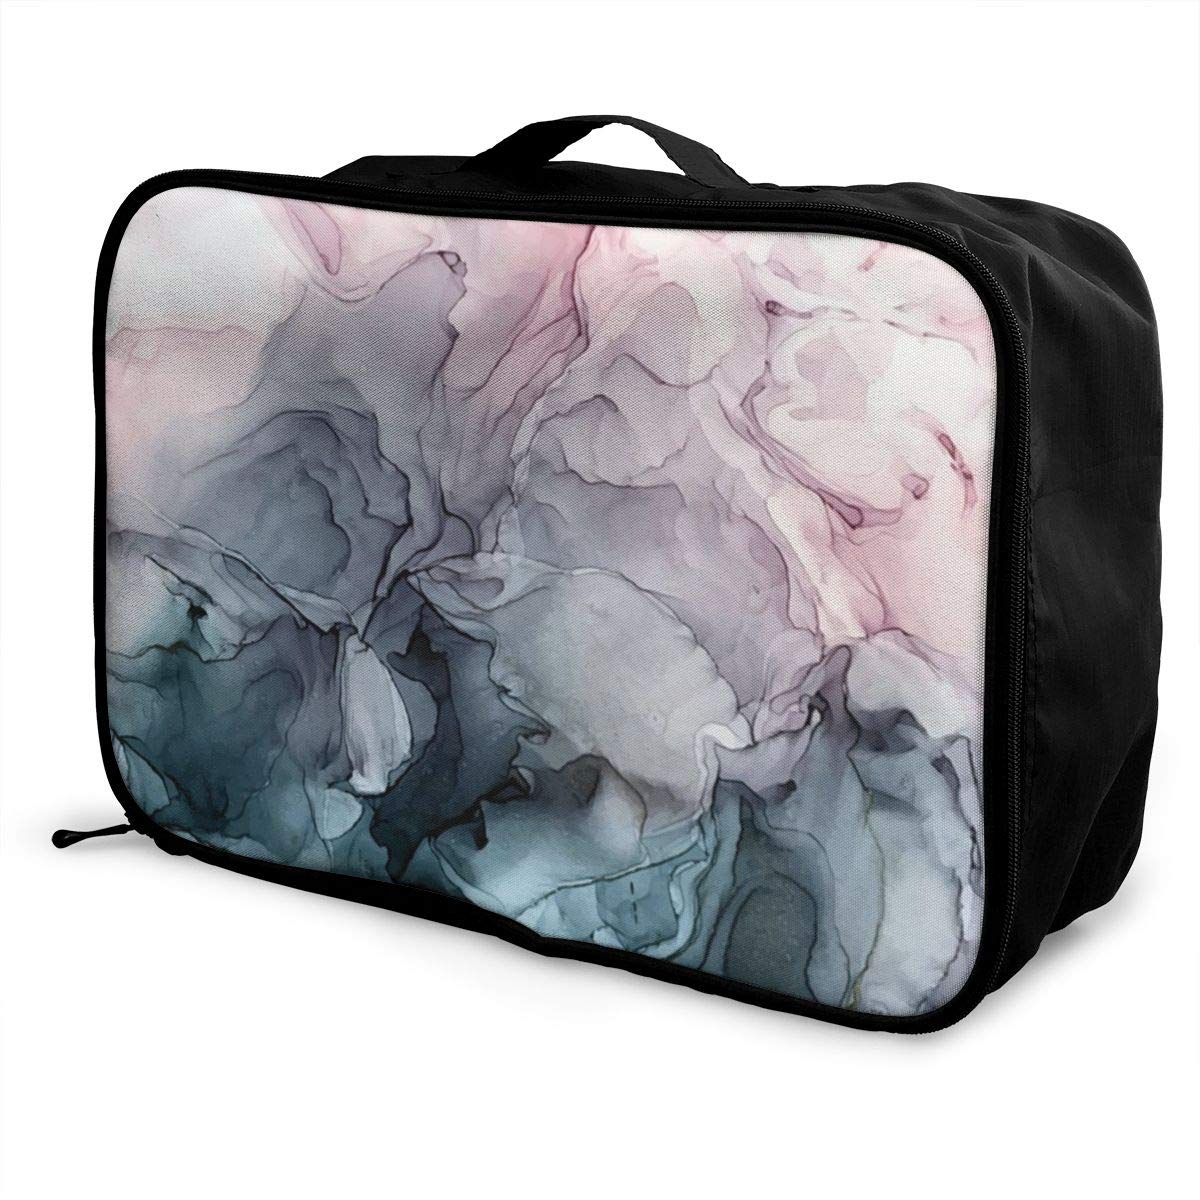 Blush And Paynes Grey Flowing Abstract Painting Travel Lightweight Waterproof Foldable Storage Portable Luggage Duffle Tote Bag Large Capacity In Trolley Handle Bags 6x11x15 Inch